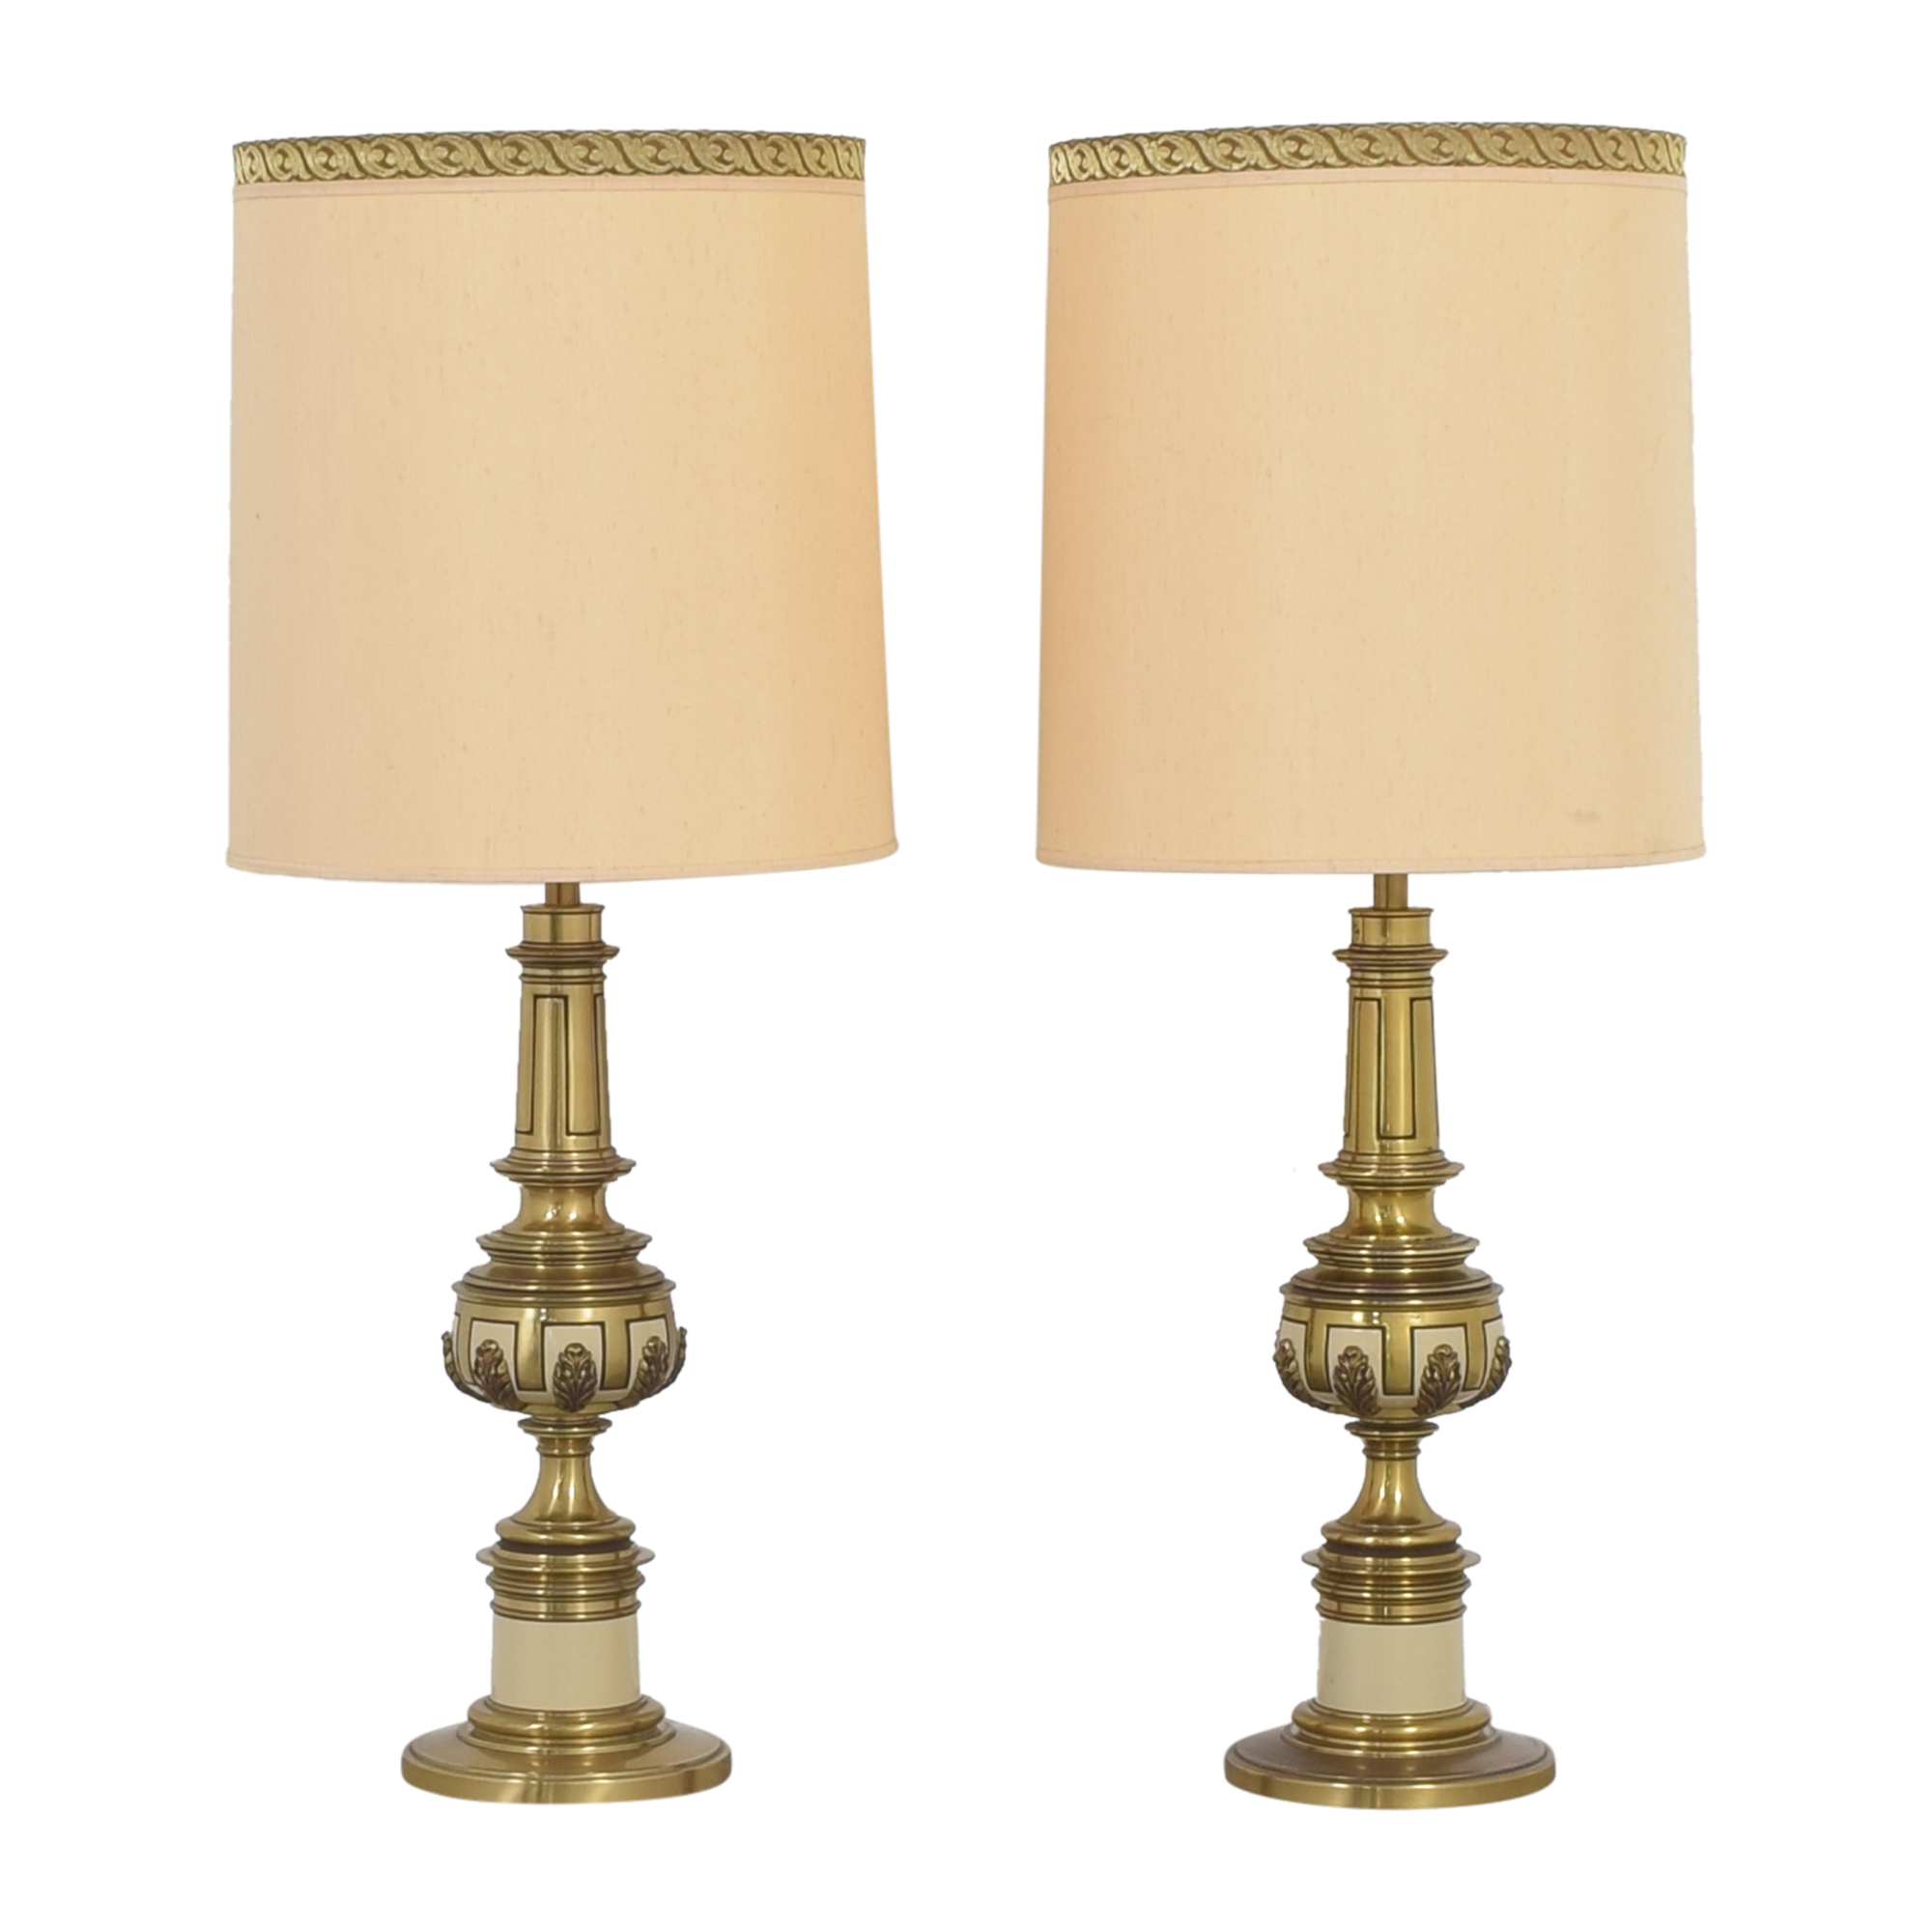 Stiffel Table Lamps  / Lamps